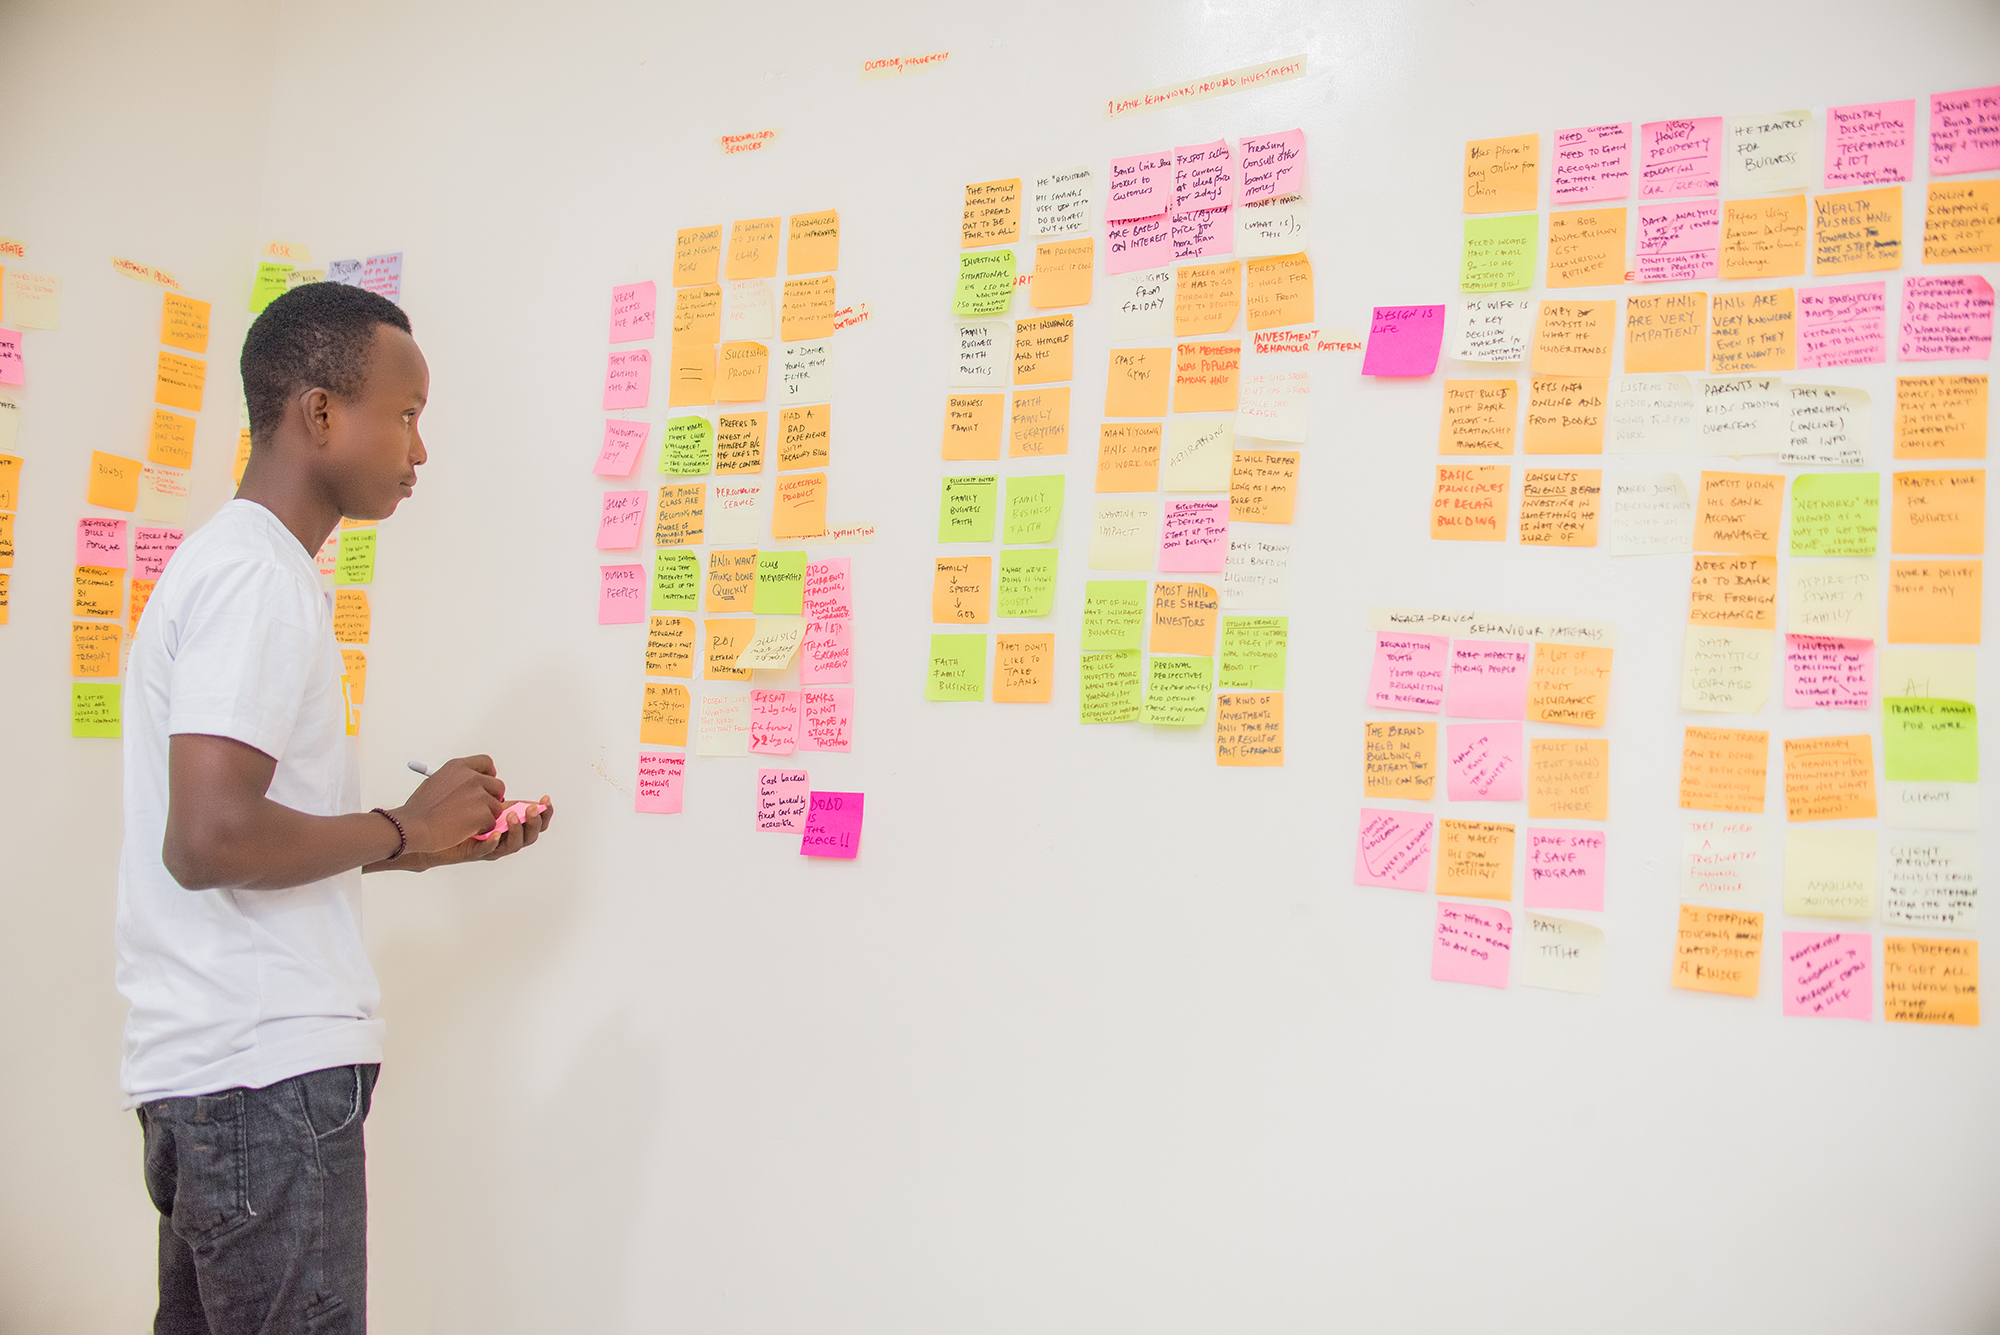 Design Research and Its Impact on Product Performance